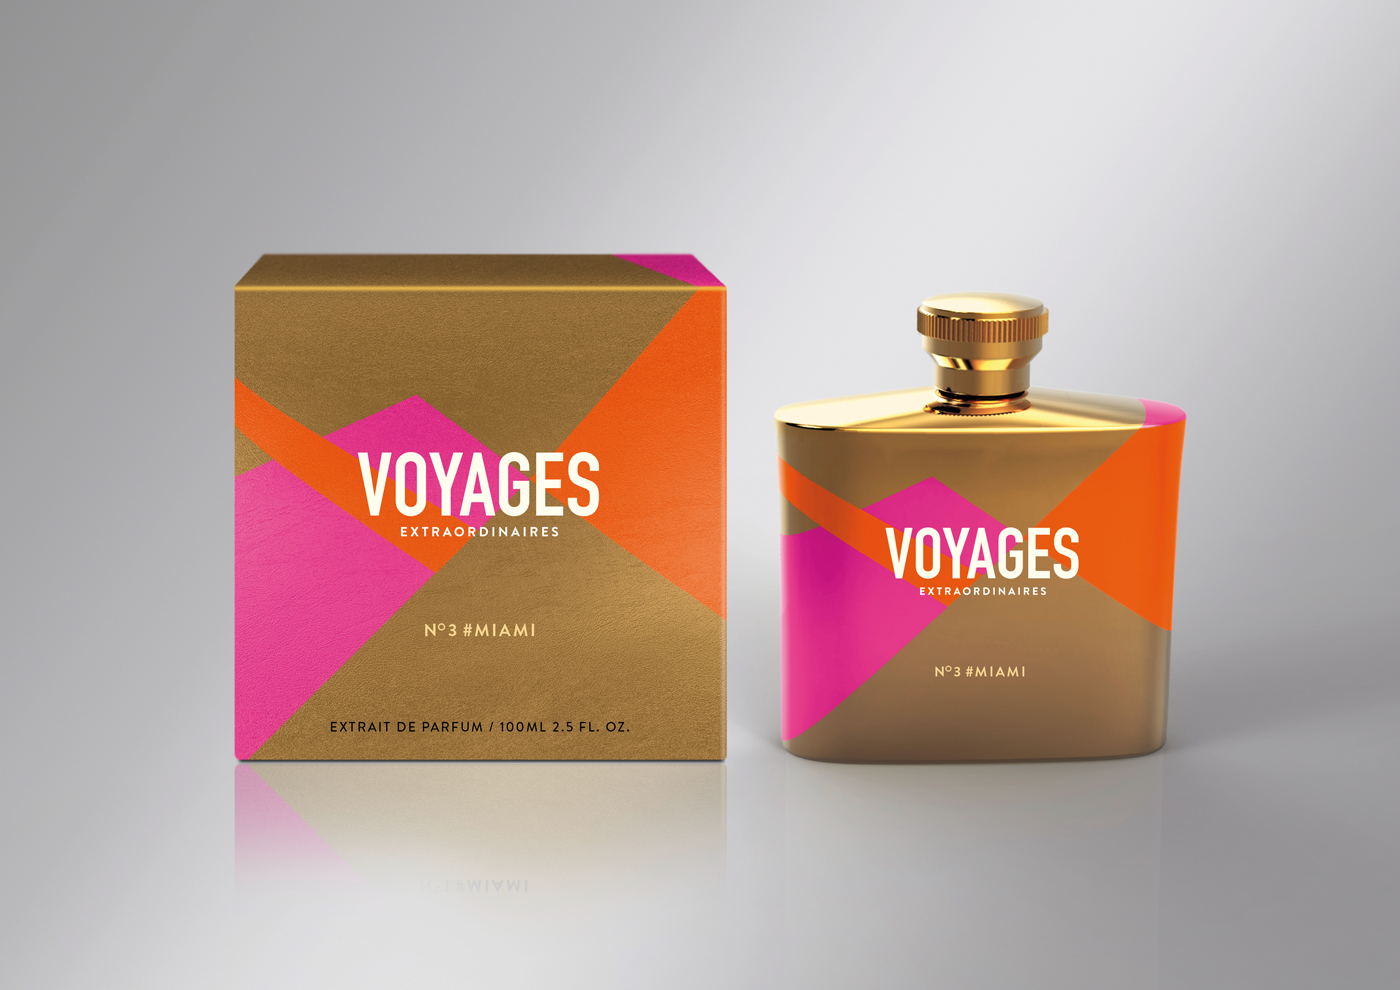 Colour Scheme Designer Voyages Extraordinaires Perfume Concept On Packaging Of